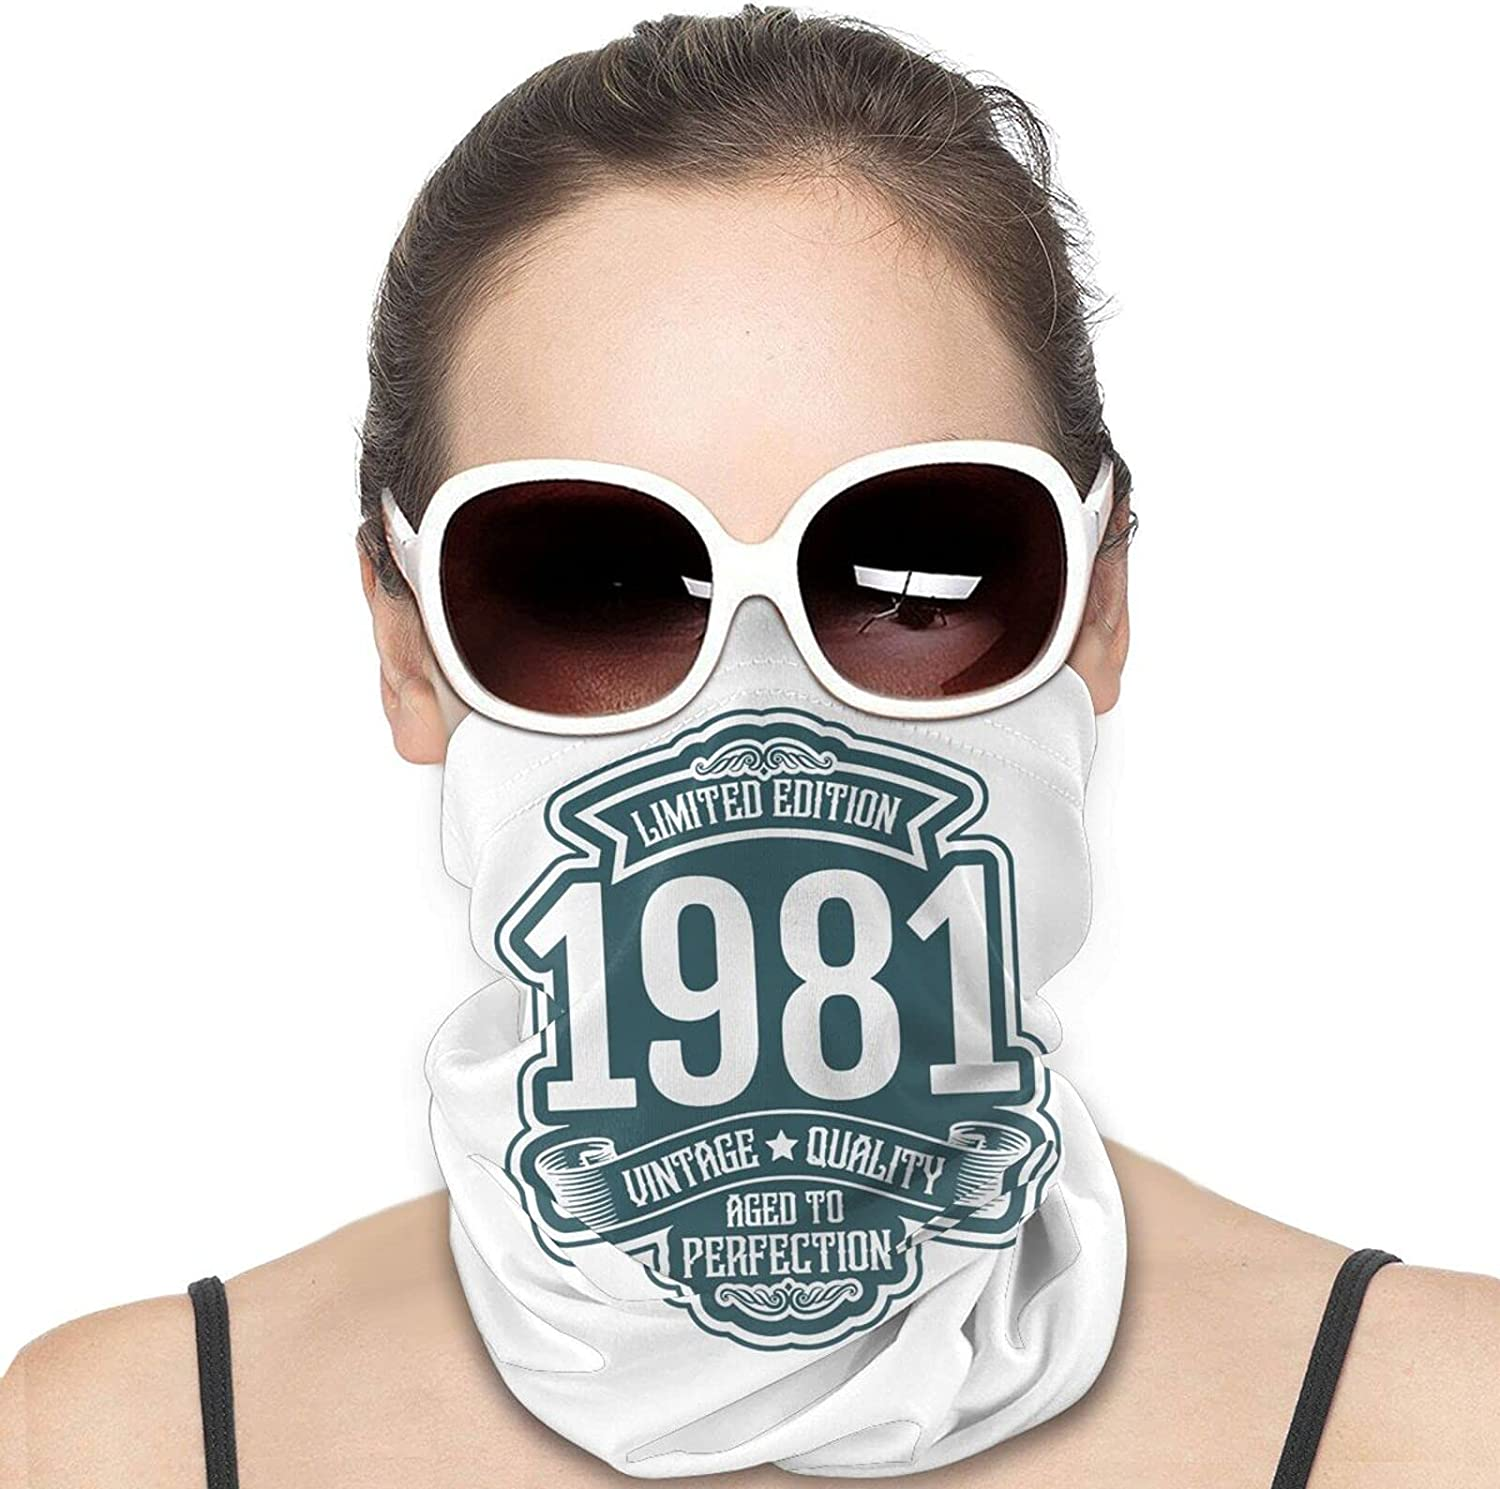 Limited 1981 Edition Round Neck Gaiter Bandnas Face Cover Uv Protection Prevent bask in Ice Scarf Headbands Perfect for Motorcycle Cycling Running Festival Raves Outdoors